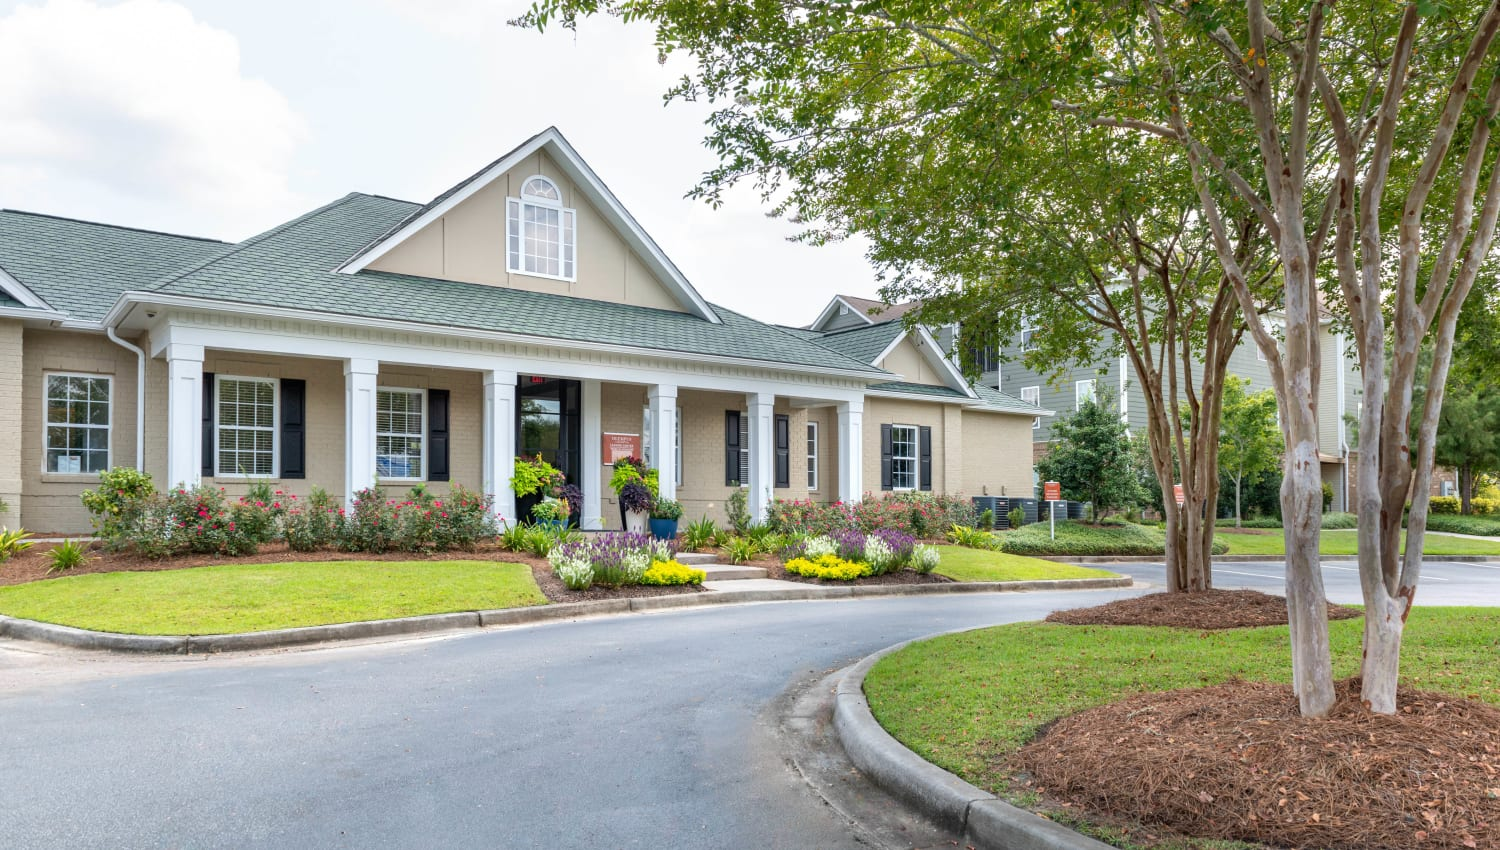 Well-maintained landscaping along the driveway leading to the leasing office at Olympus Carrington in Pooler, Georgia